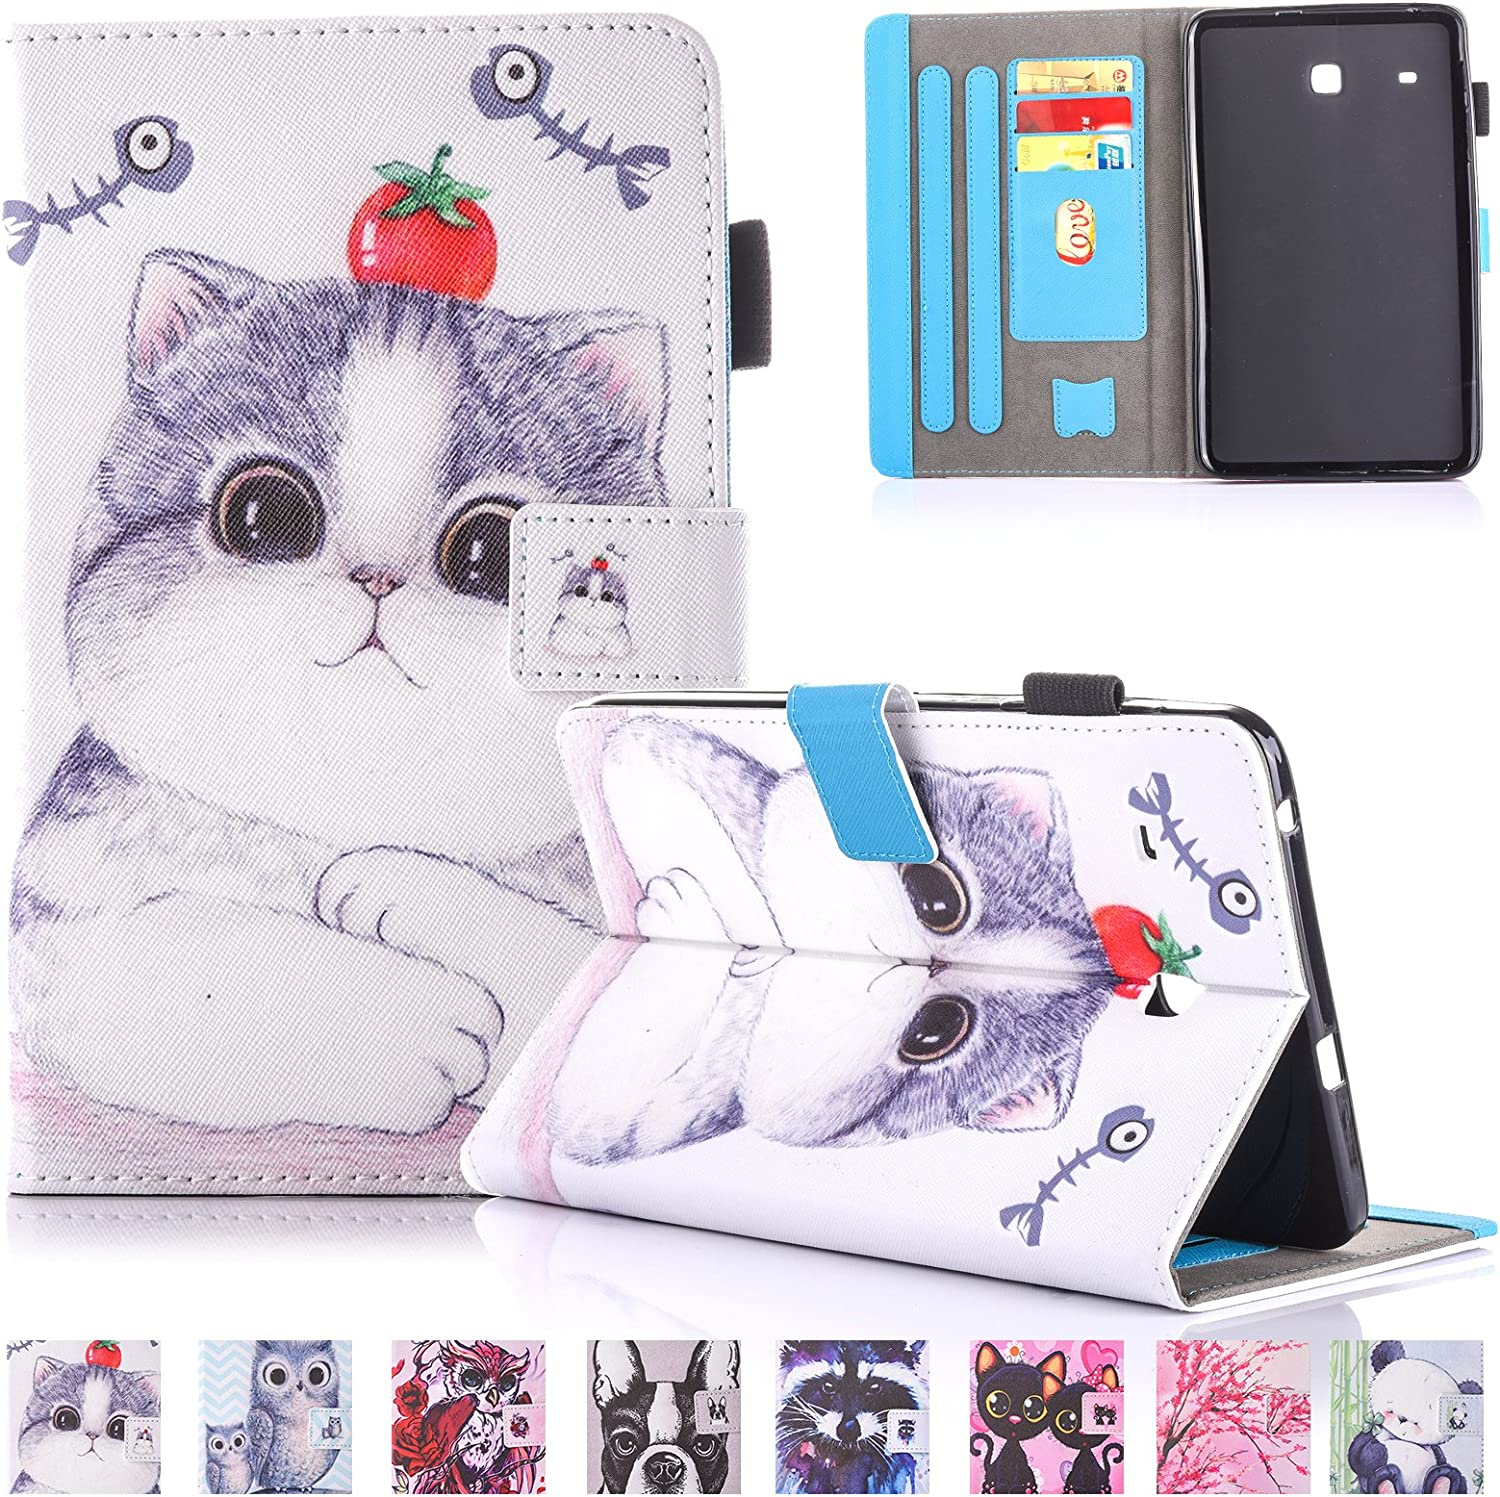 Ucovers Case for Samsung Galaxy Tab E 8.0 inch 2016 Tablet (SM-T375 & T377 & T378) with Pencil Holder Card Pockets PU Leather Magnetic Wallet Folio Stand Soft TPU Back Shockproof Shell, Tomato Cat